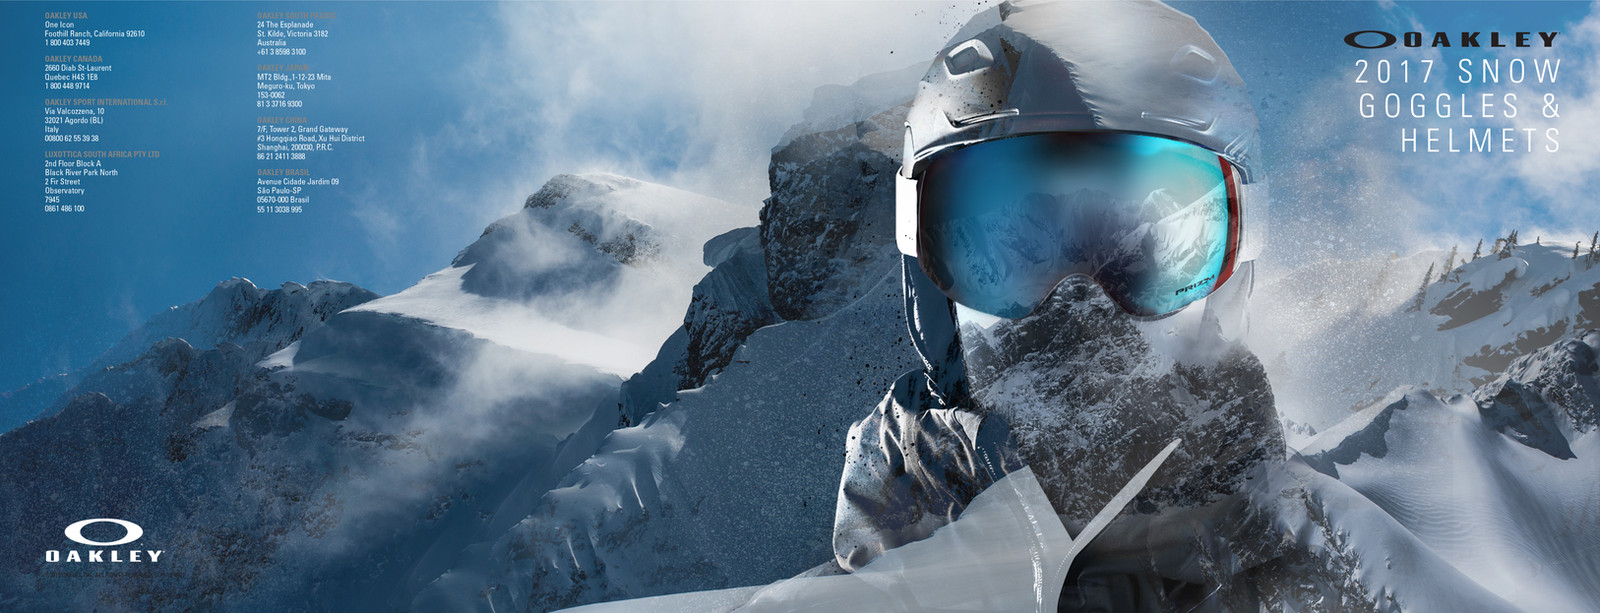 ca21846426 Oakley 2017 Snow Catalog